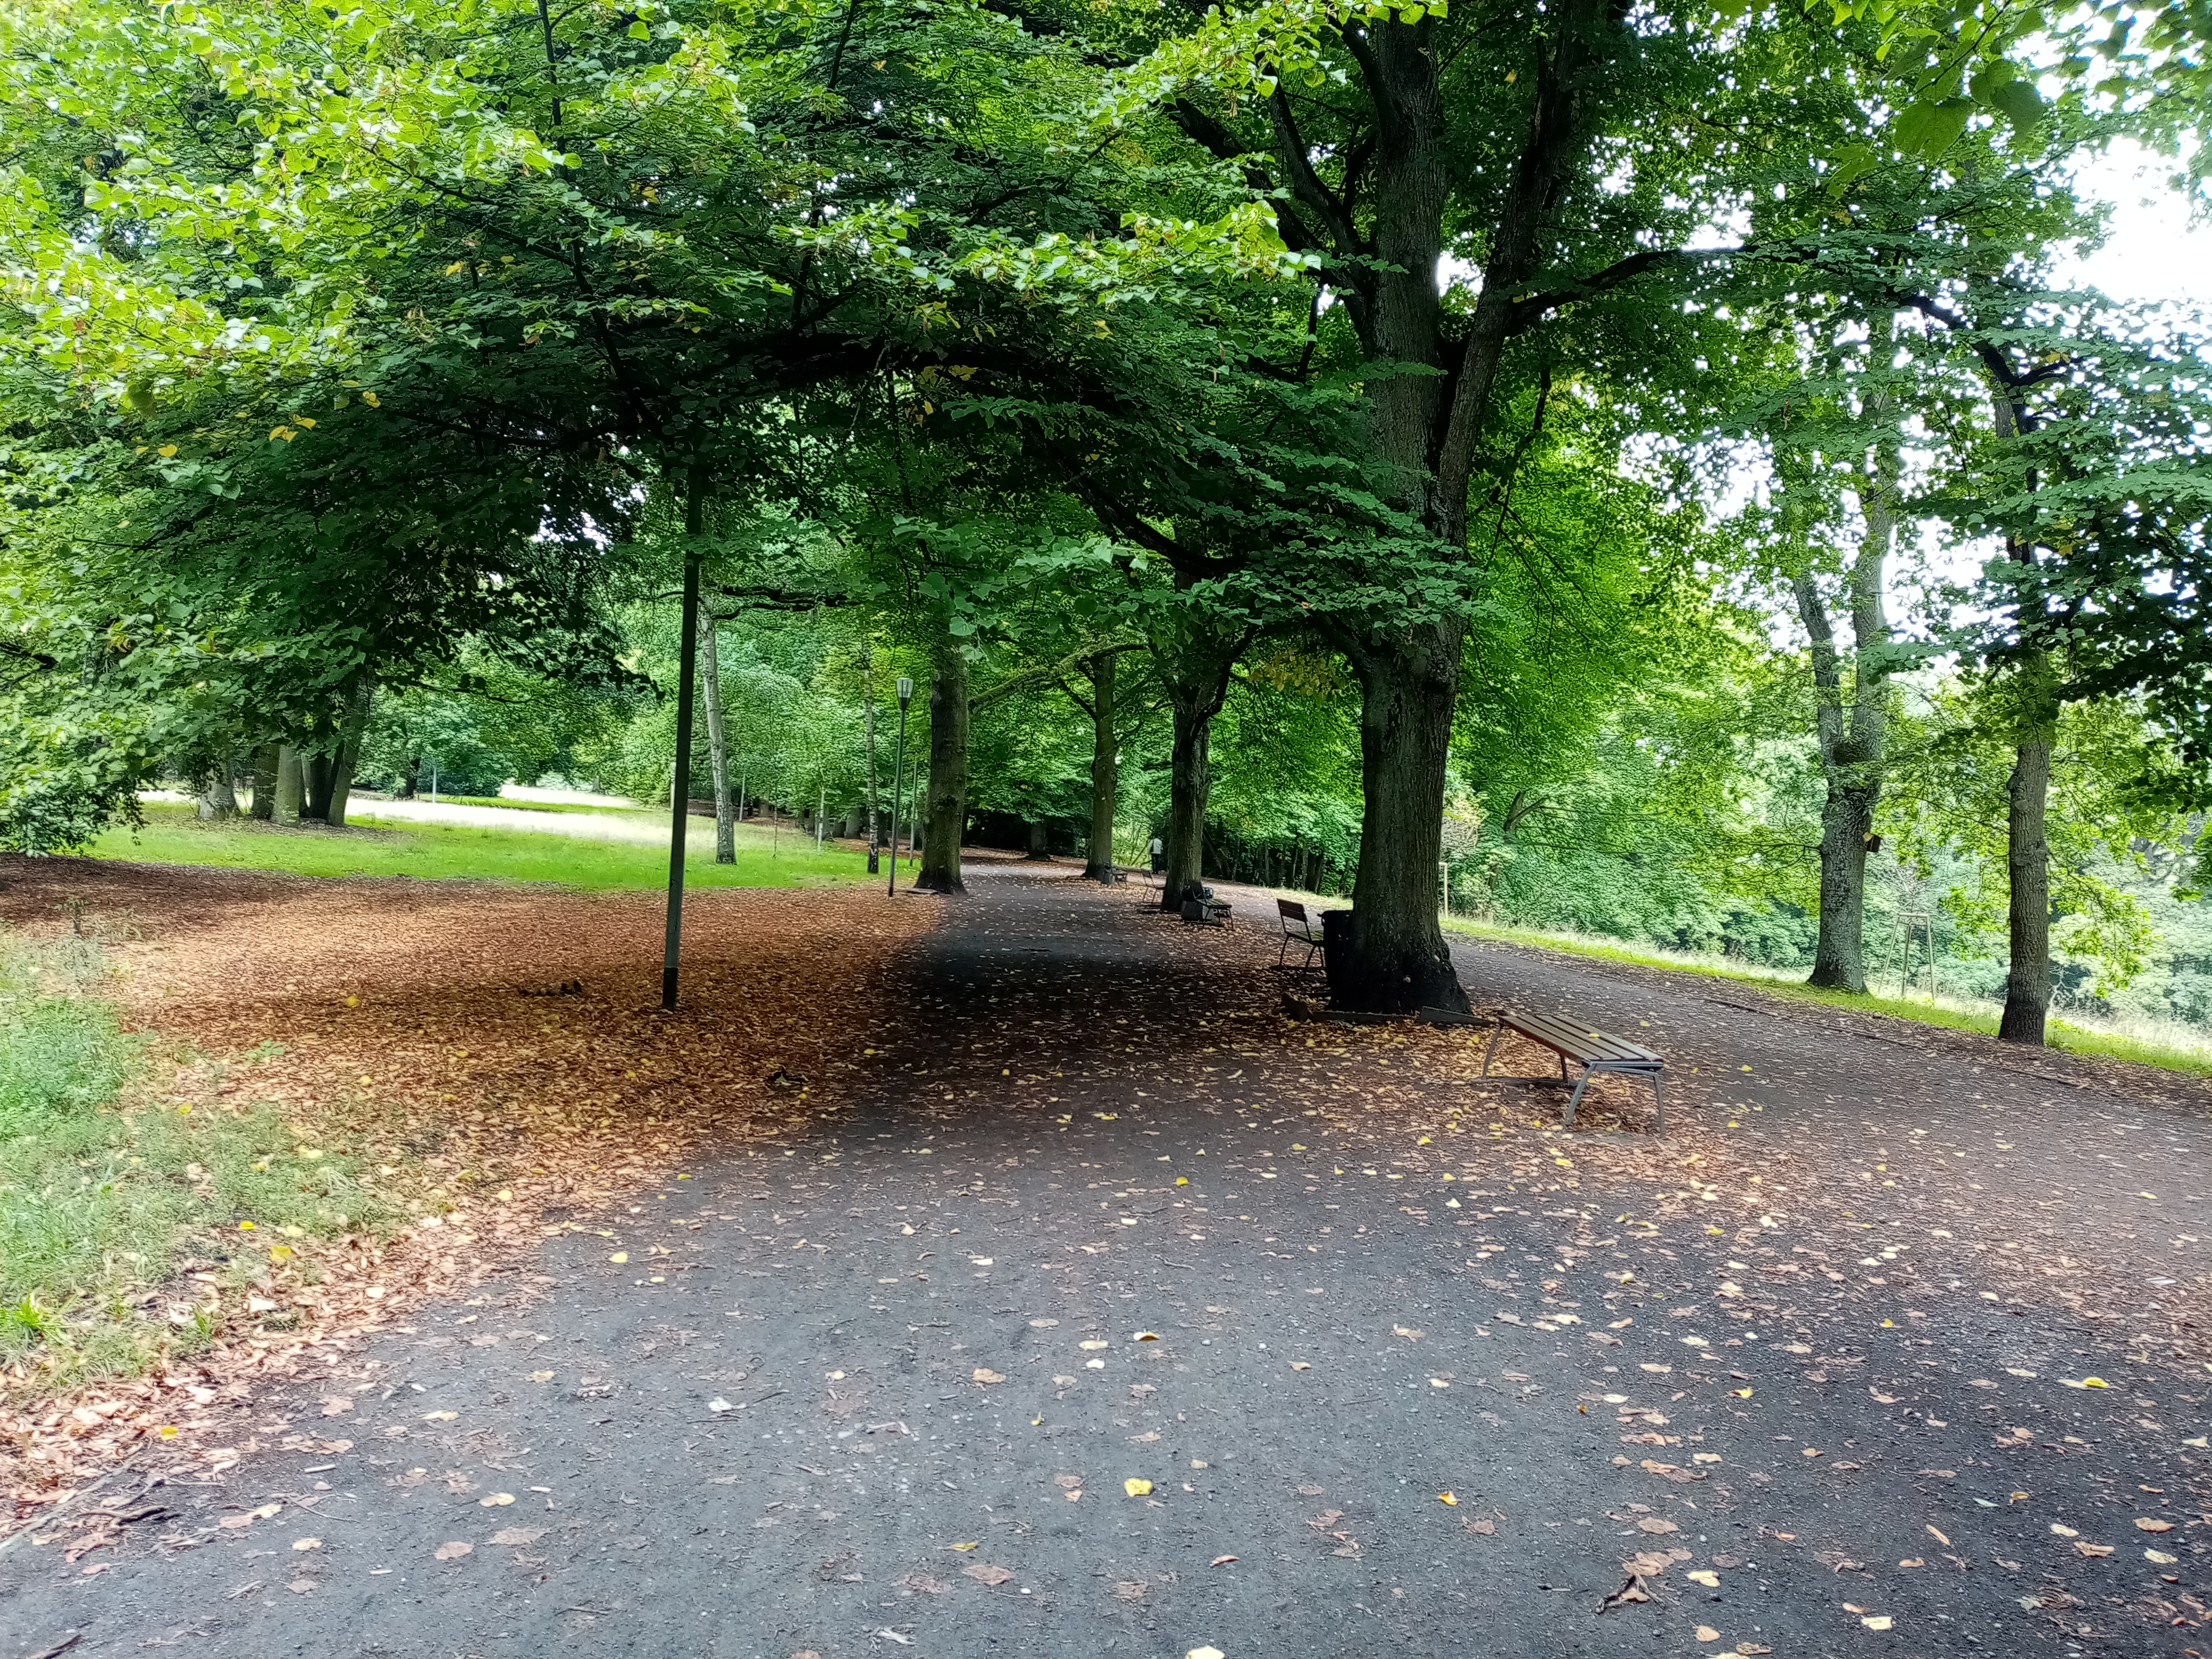 the road with fallen leaves aside and green trees